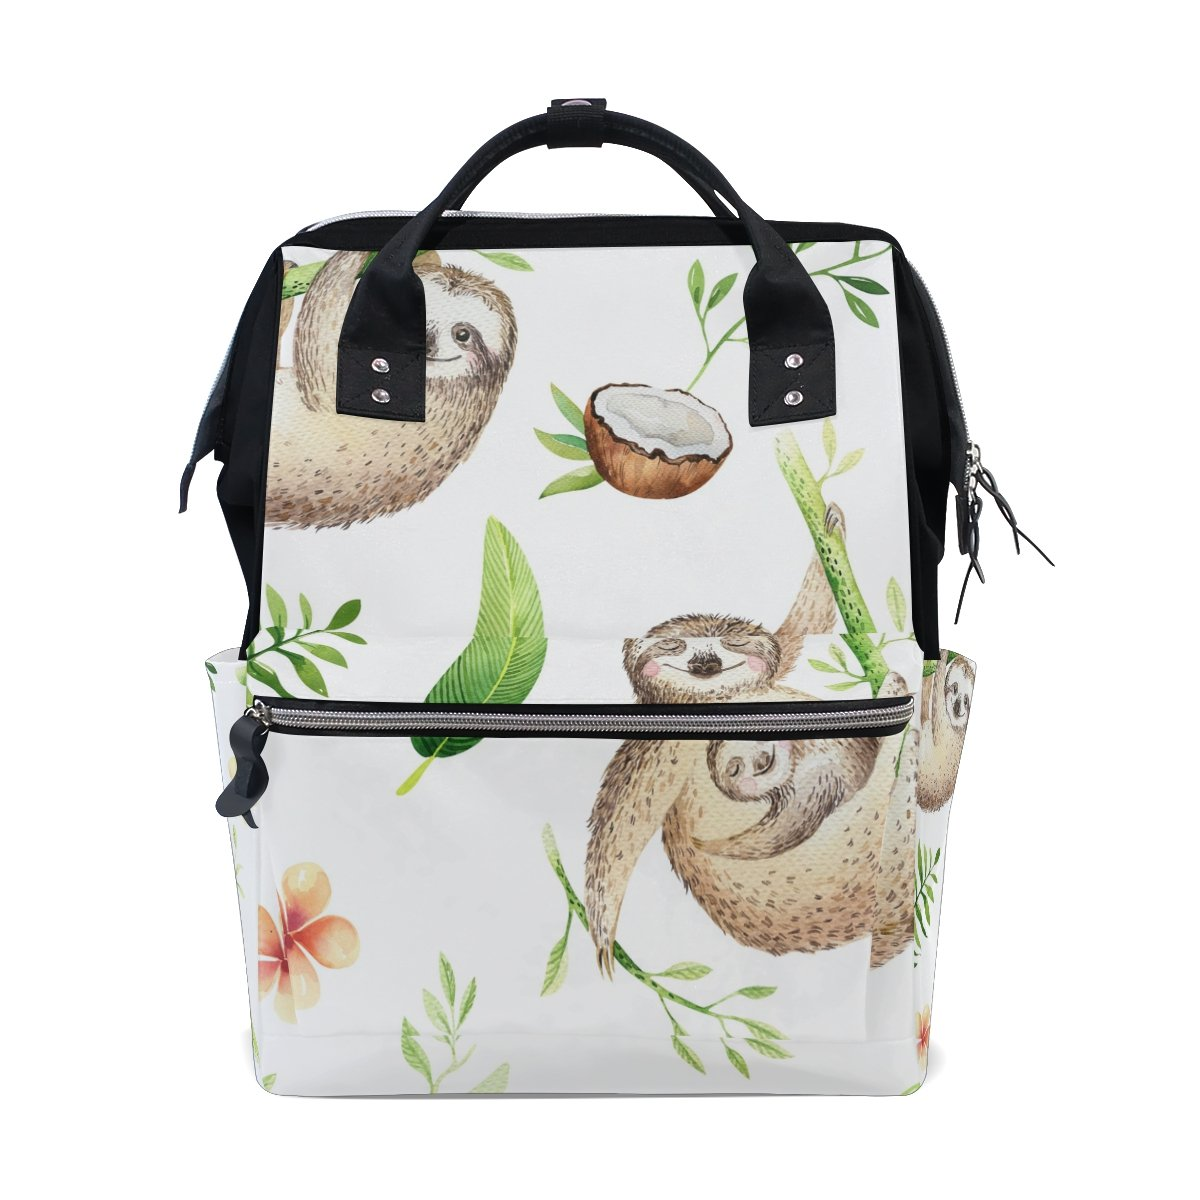 Backpacks Got7 Fans Canvas Luminous Backpack Bag Flowers Point School Teenagers Student Book Travel Laptop Girl Bag Gift Price Remains Stable Luggage & Bags